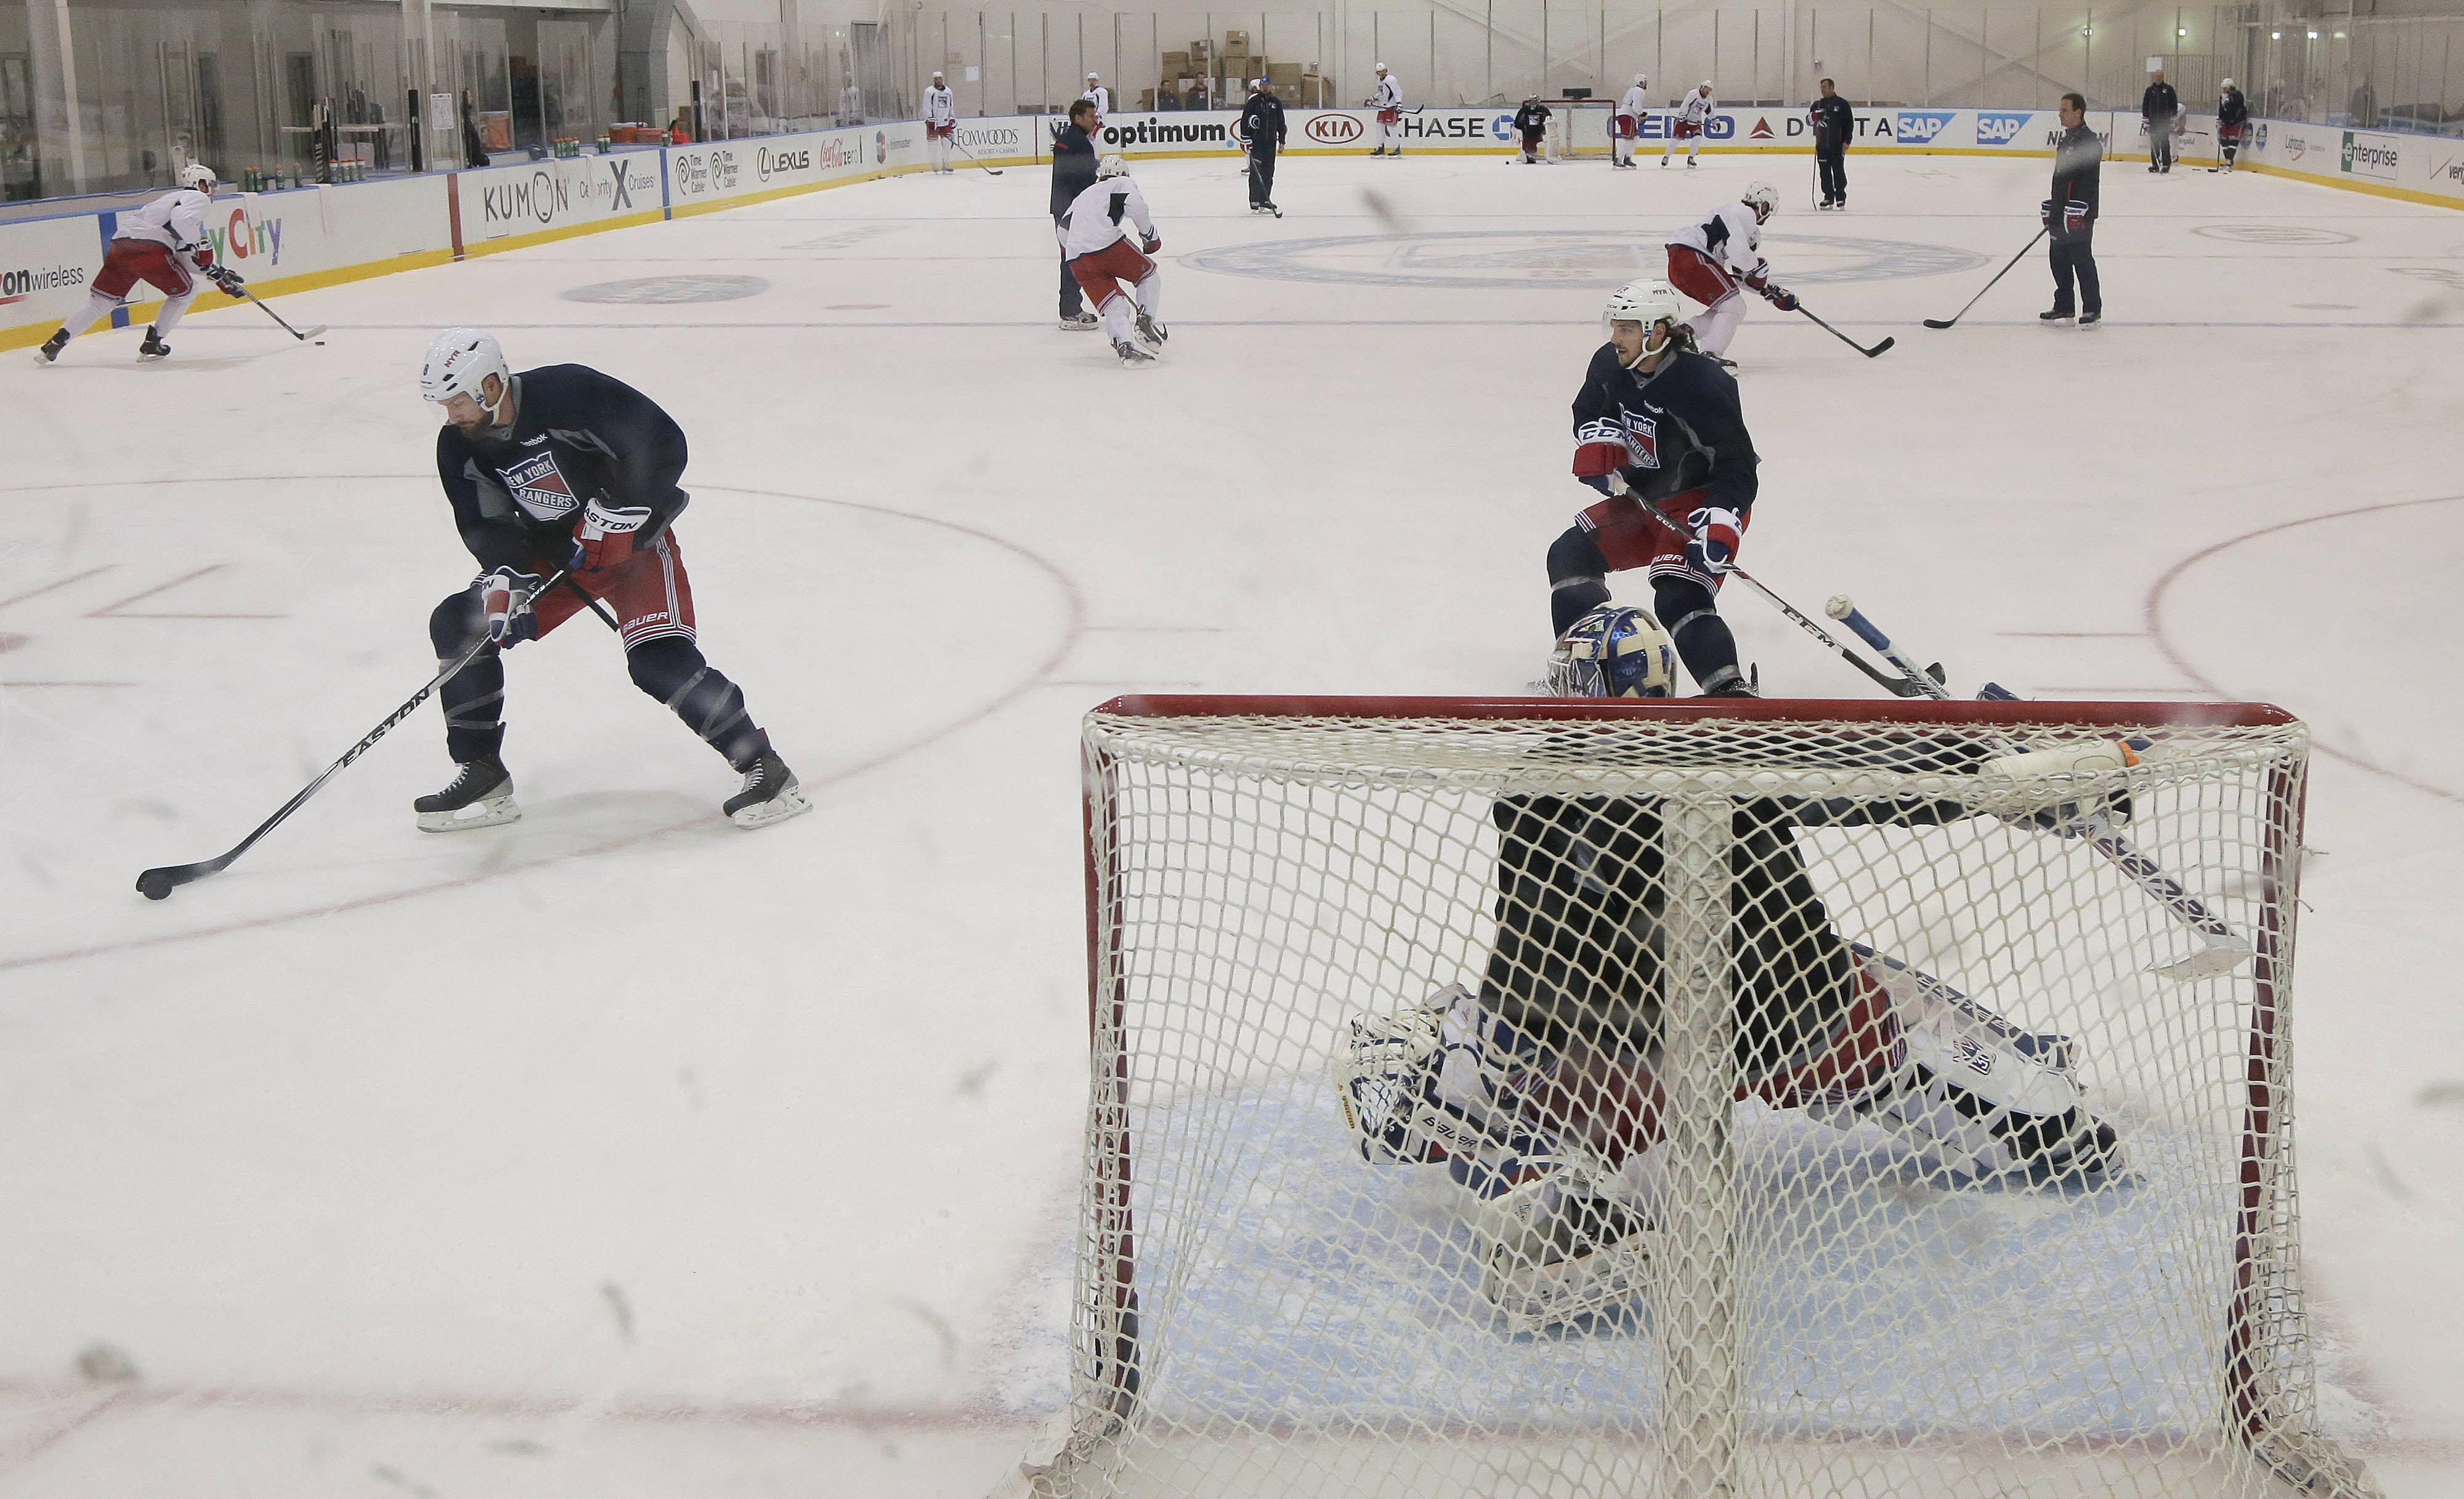 The New York Rangers run through drills at their practice facility, Monday in Greenburgh, N.Y. The Rangers will face the Los Angeles Kings in Game 1 of Stanley Cup Final in Los Angeles on Wednesday.